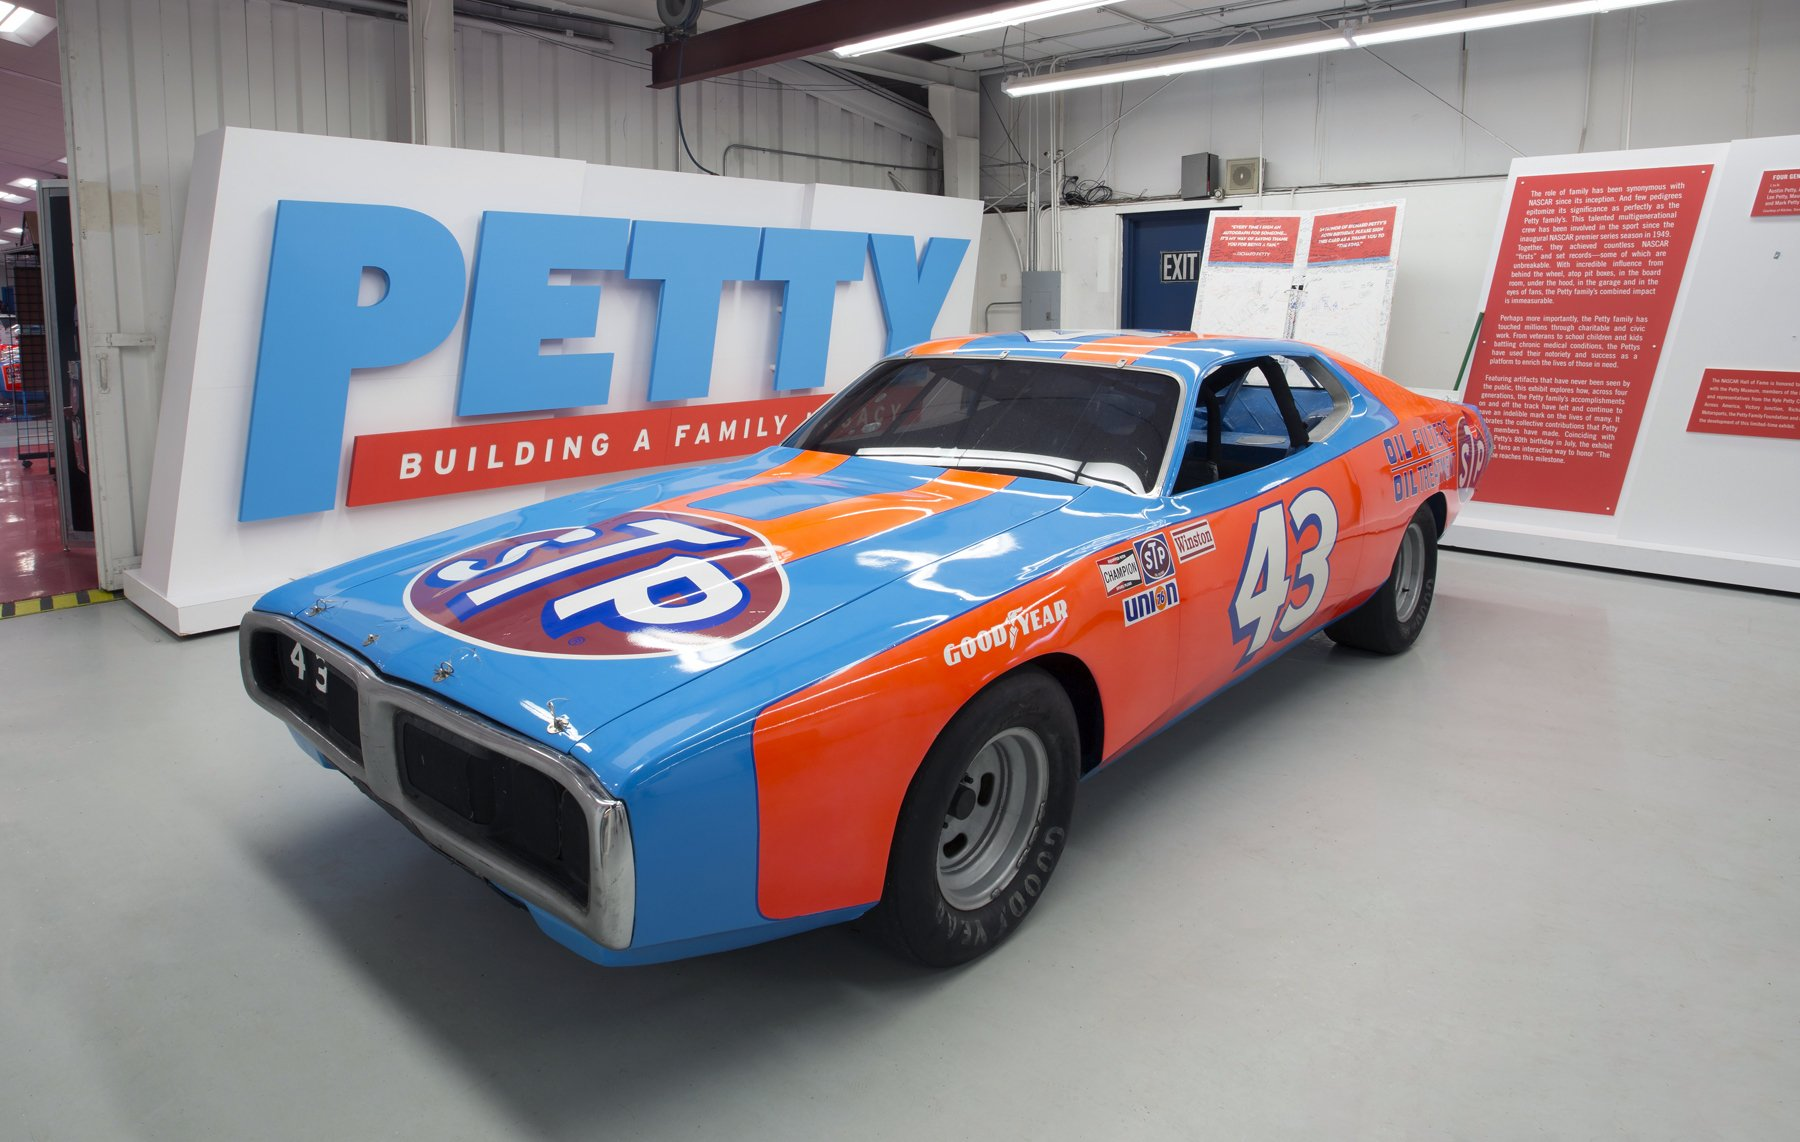 Richard Petty Cars Trophies To Be Sold At Auction On May 12